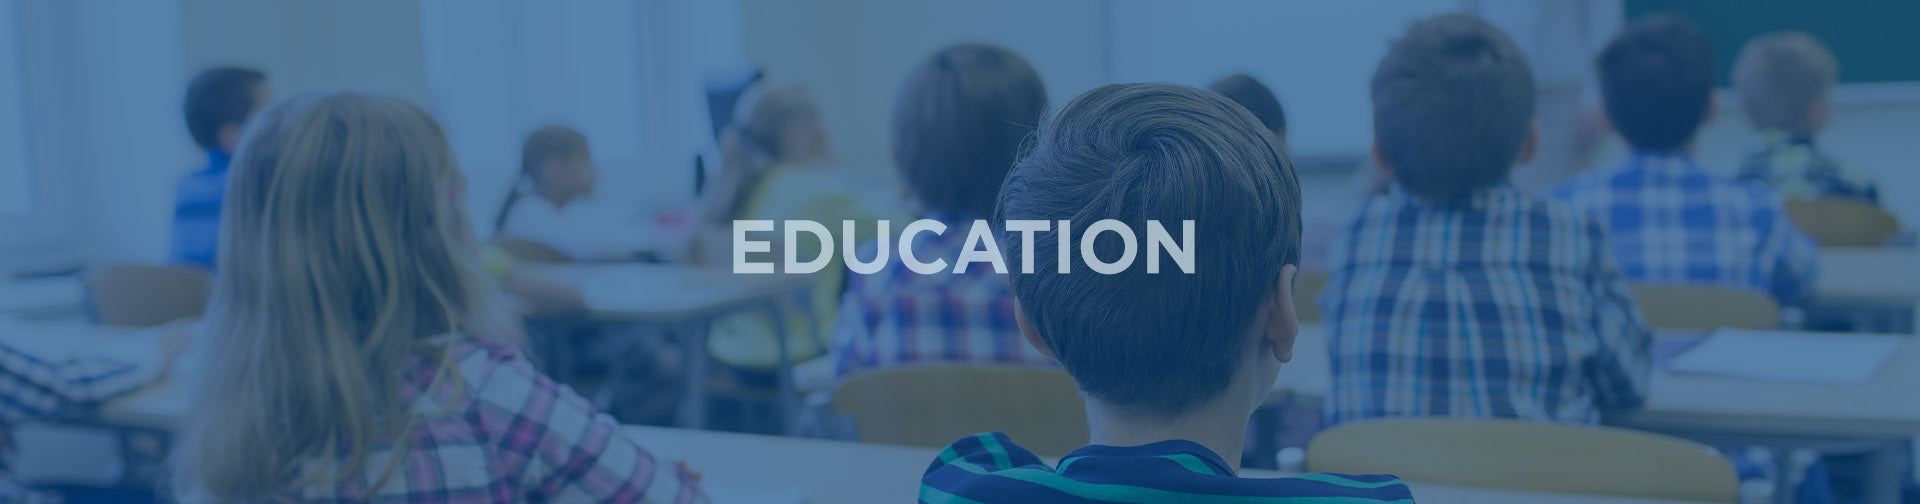 Education, schools, daycares, and universities disinfection and virus spread control